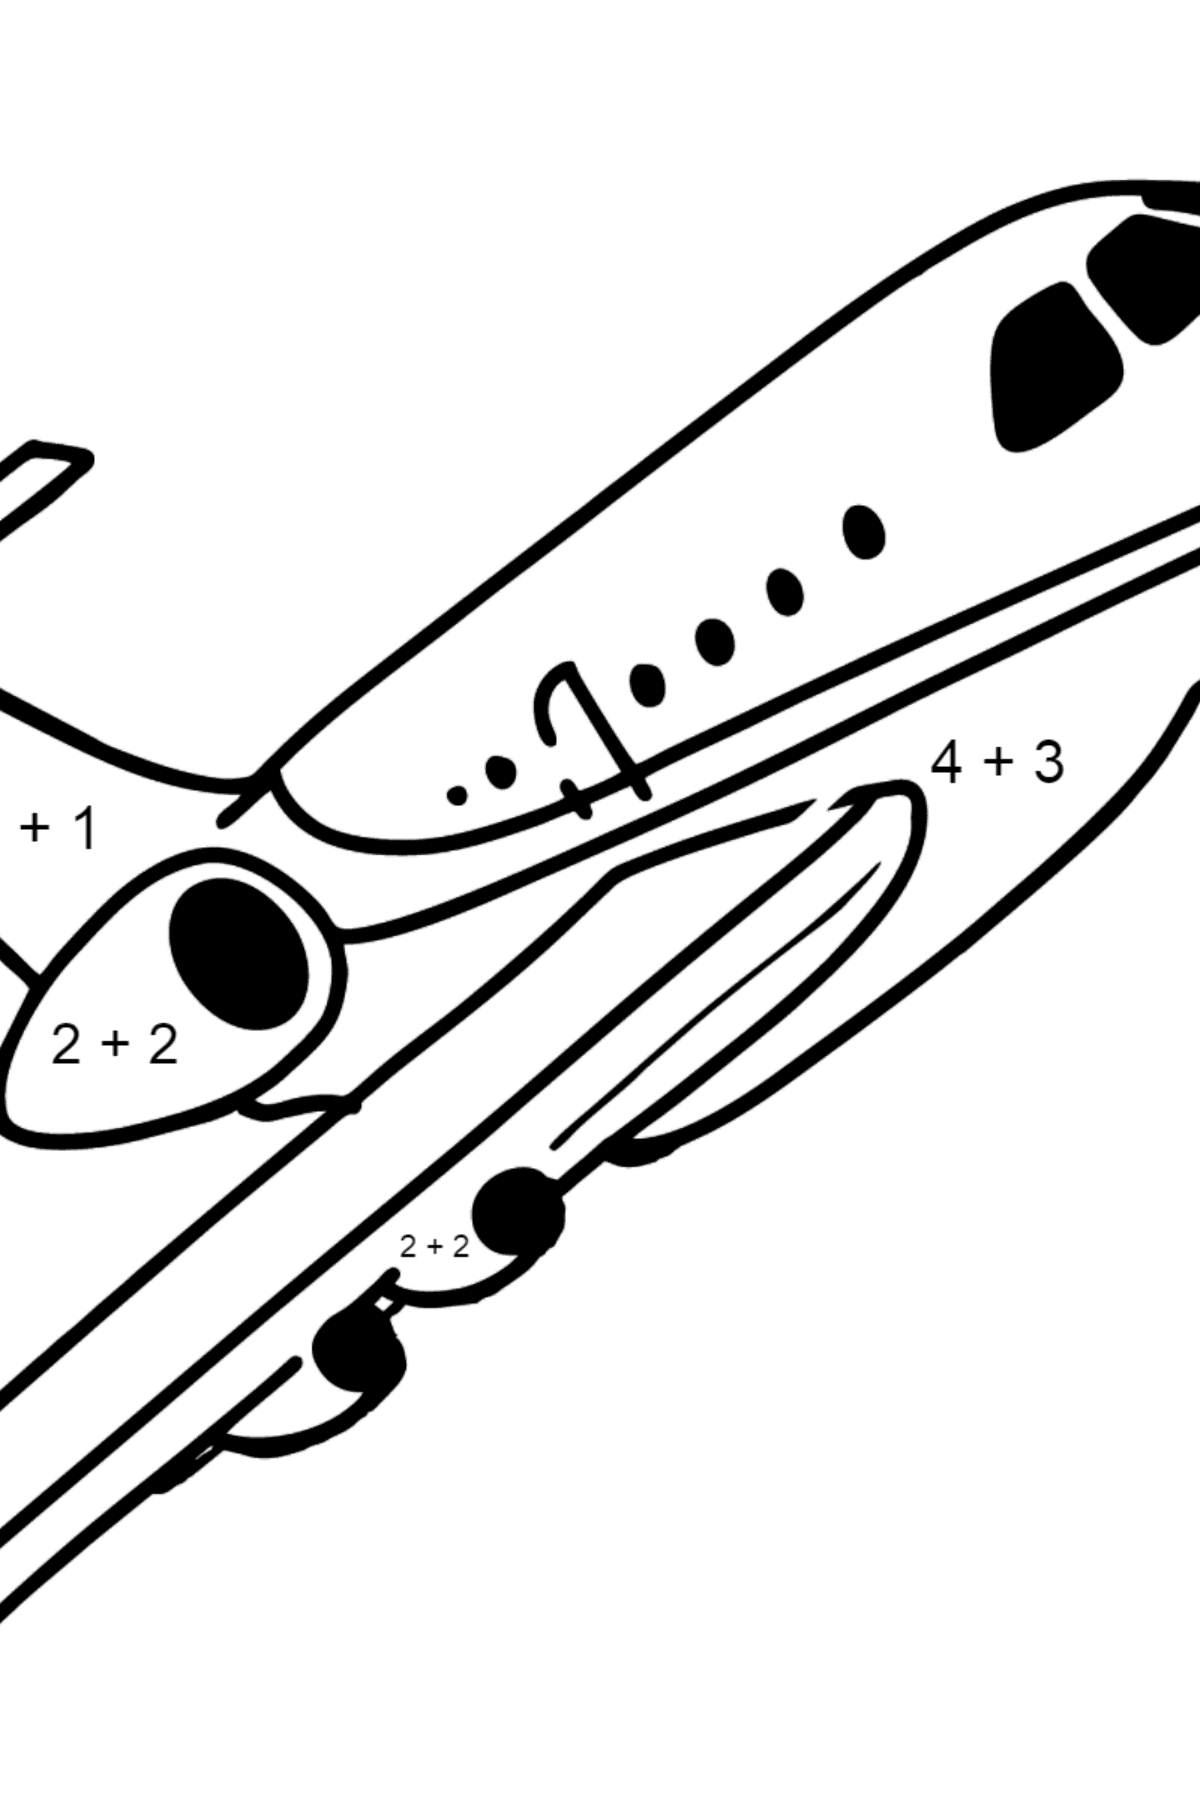 Airbus Airplane coloring page - Math Coloring - Addition for Kids